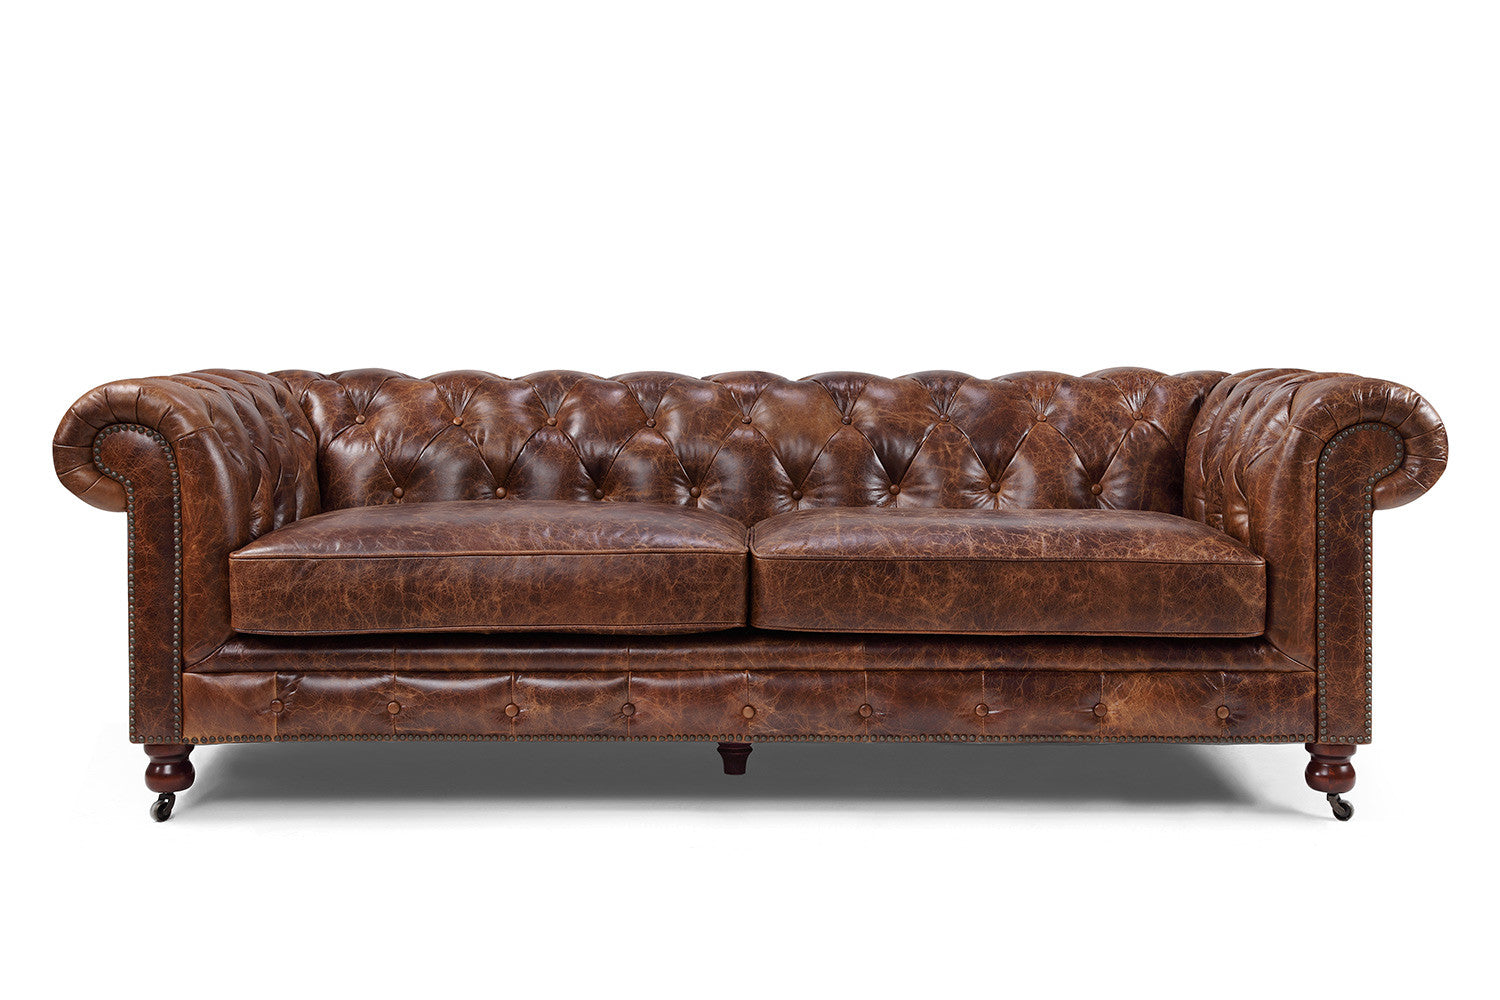 Canap chesterfield en cuir kensington rose moore - Canape chesterfield cuir ...